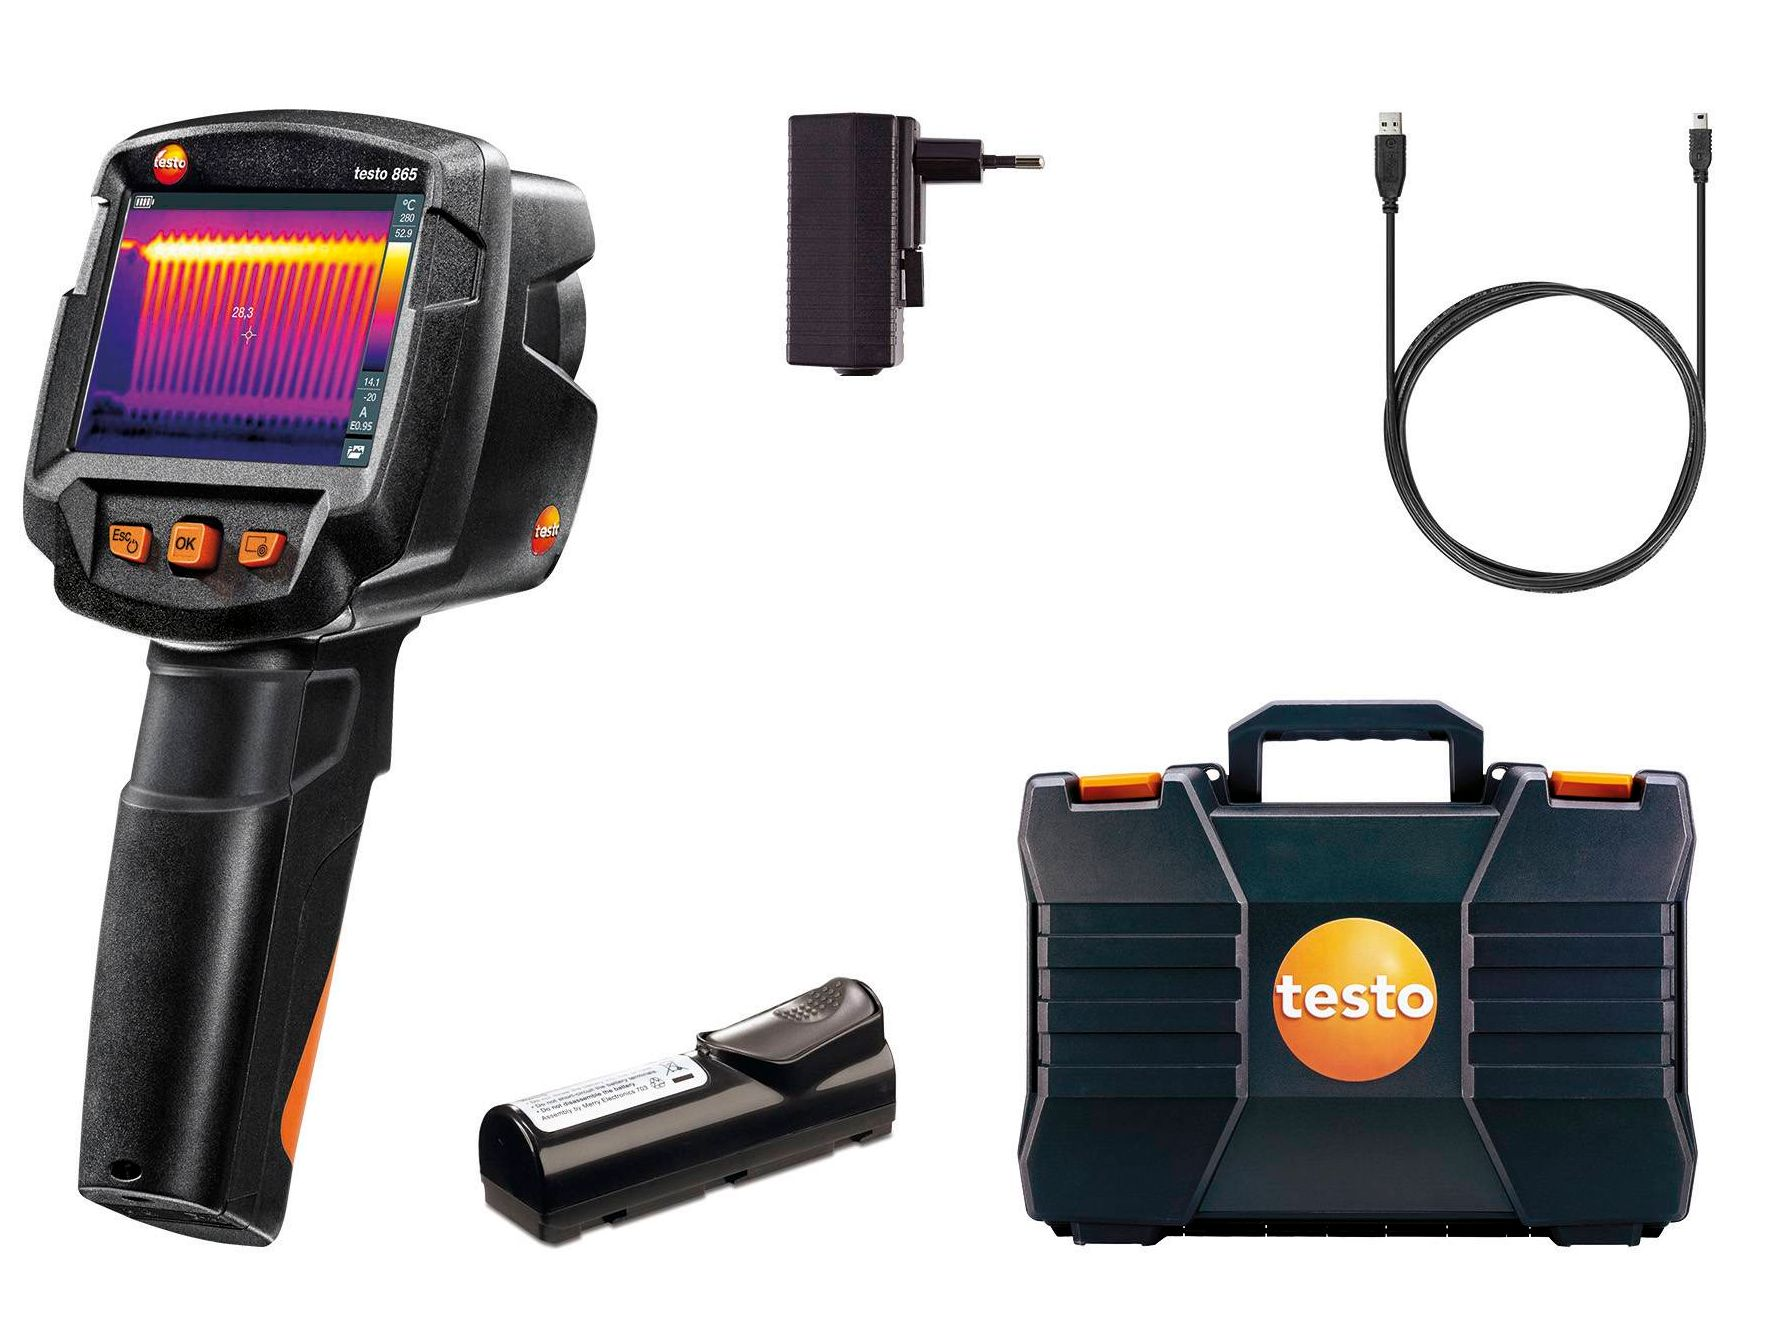 testo 865 - thermal imager